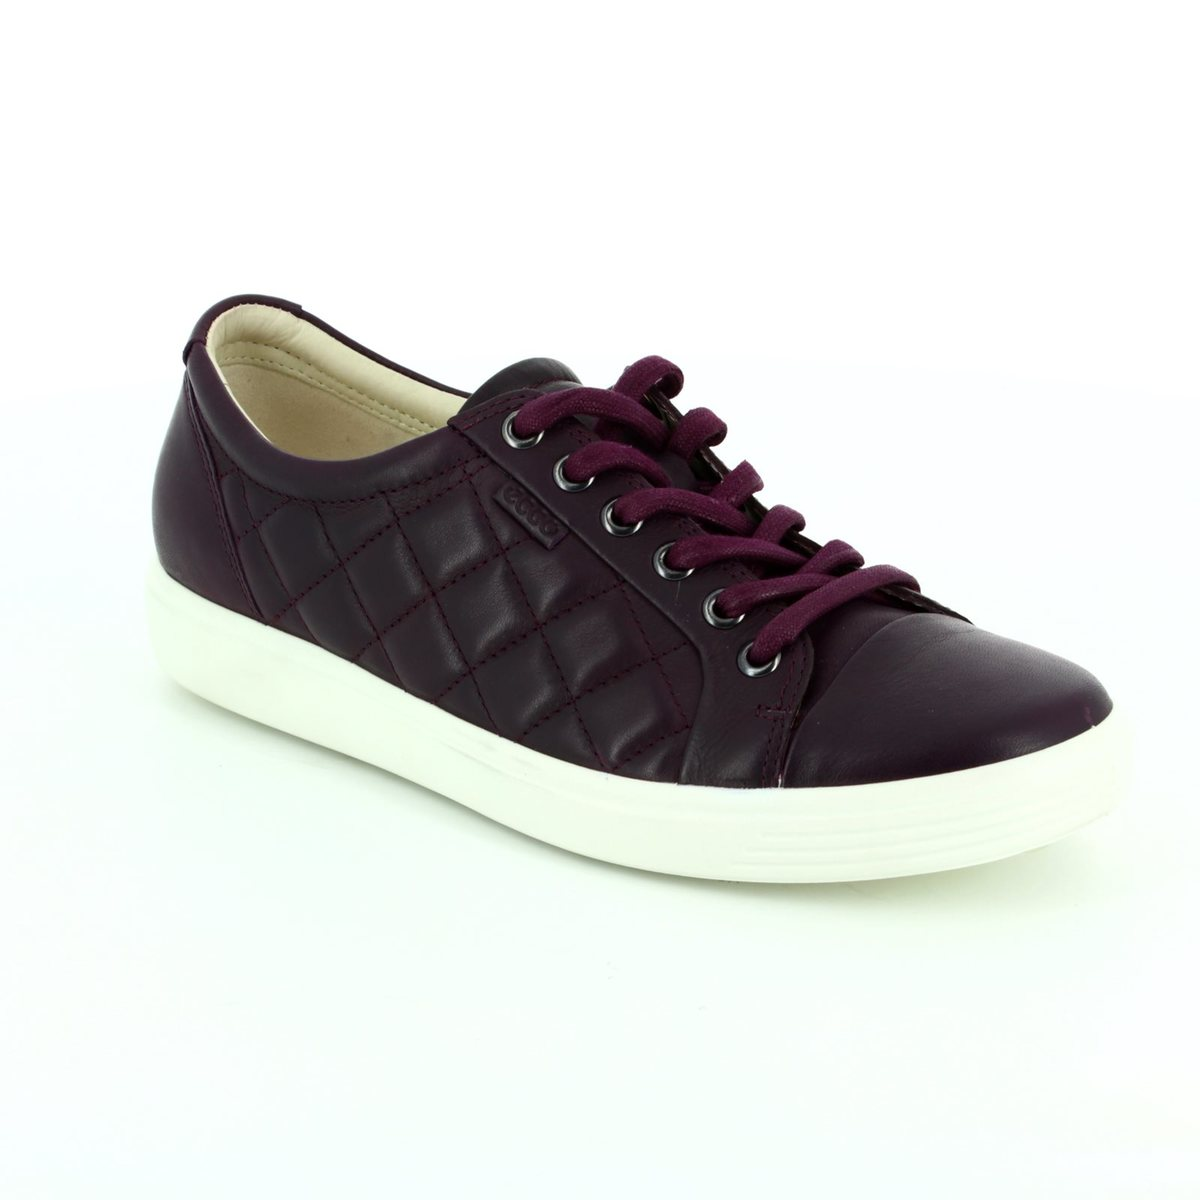 9da8bbbbb9 430083/01276 Soft 7 Ladies at Begg Shoes & Bags